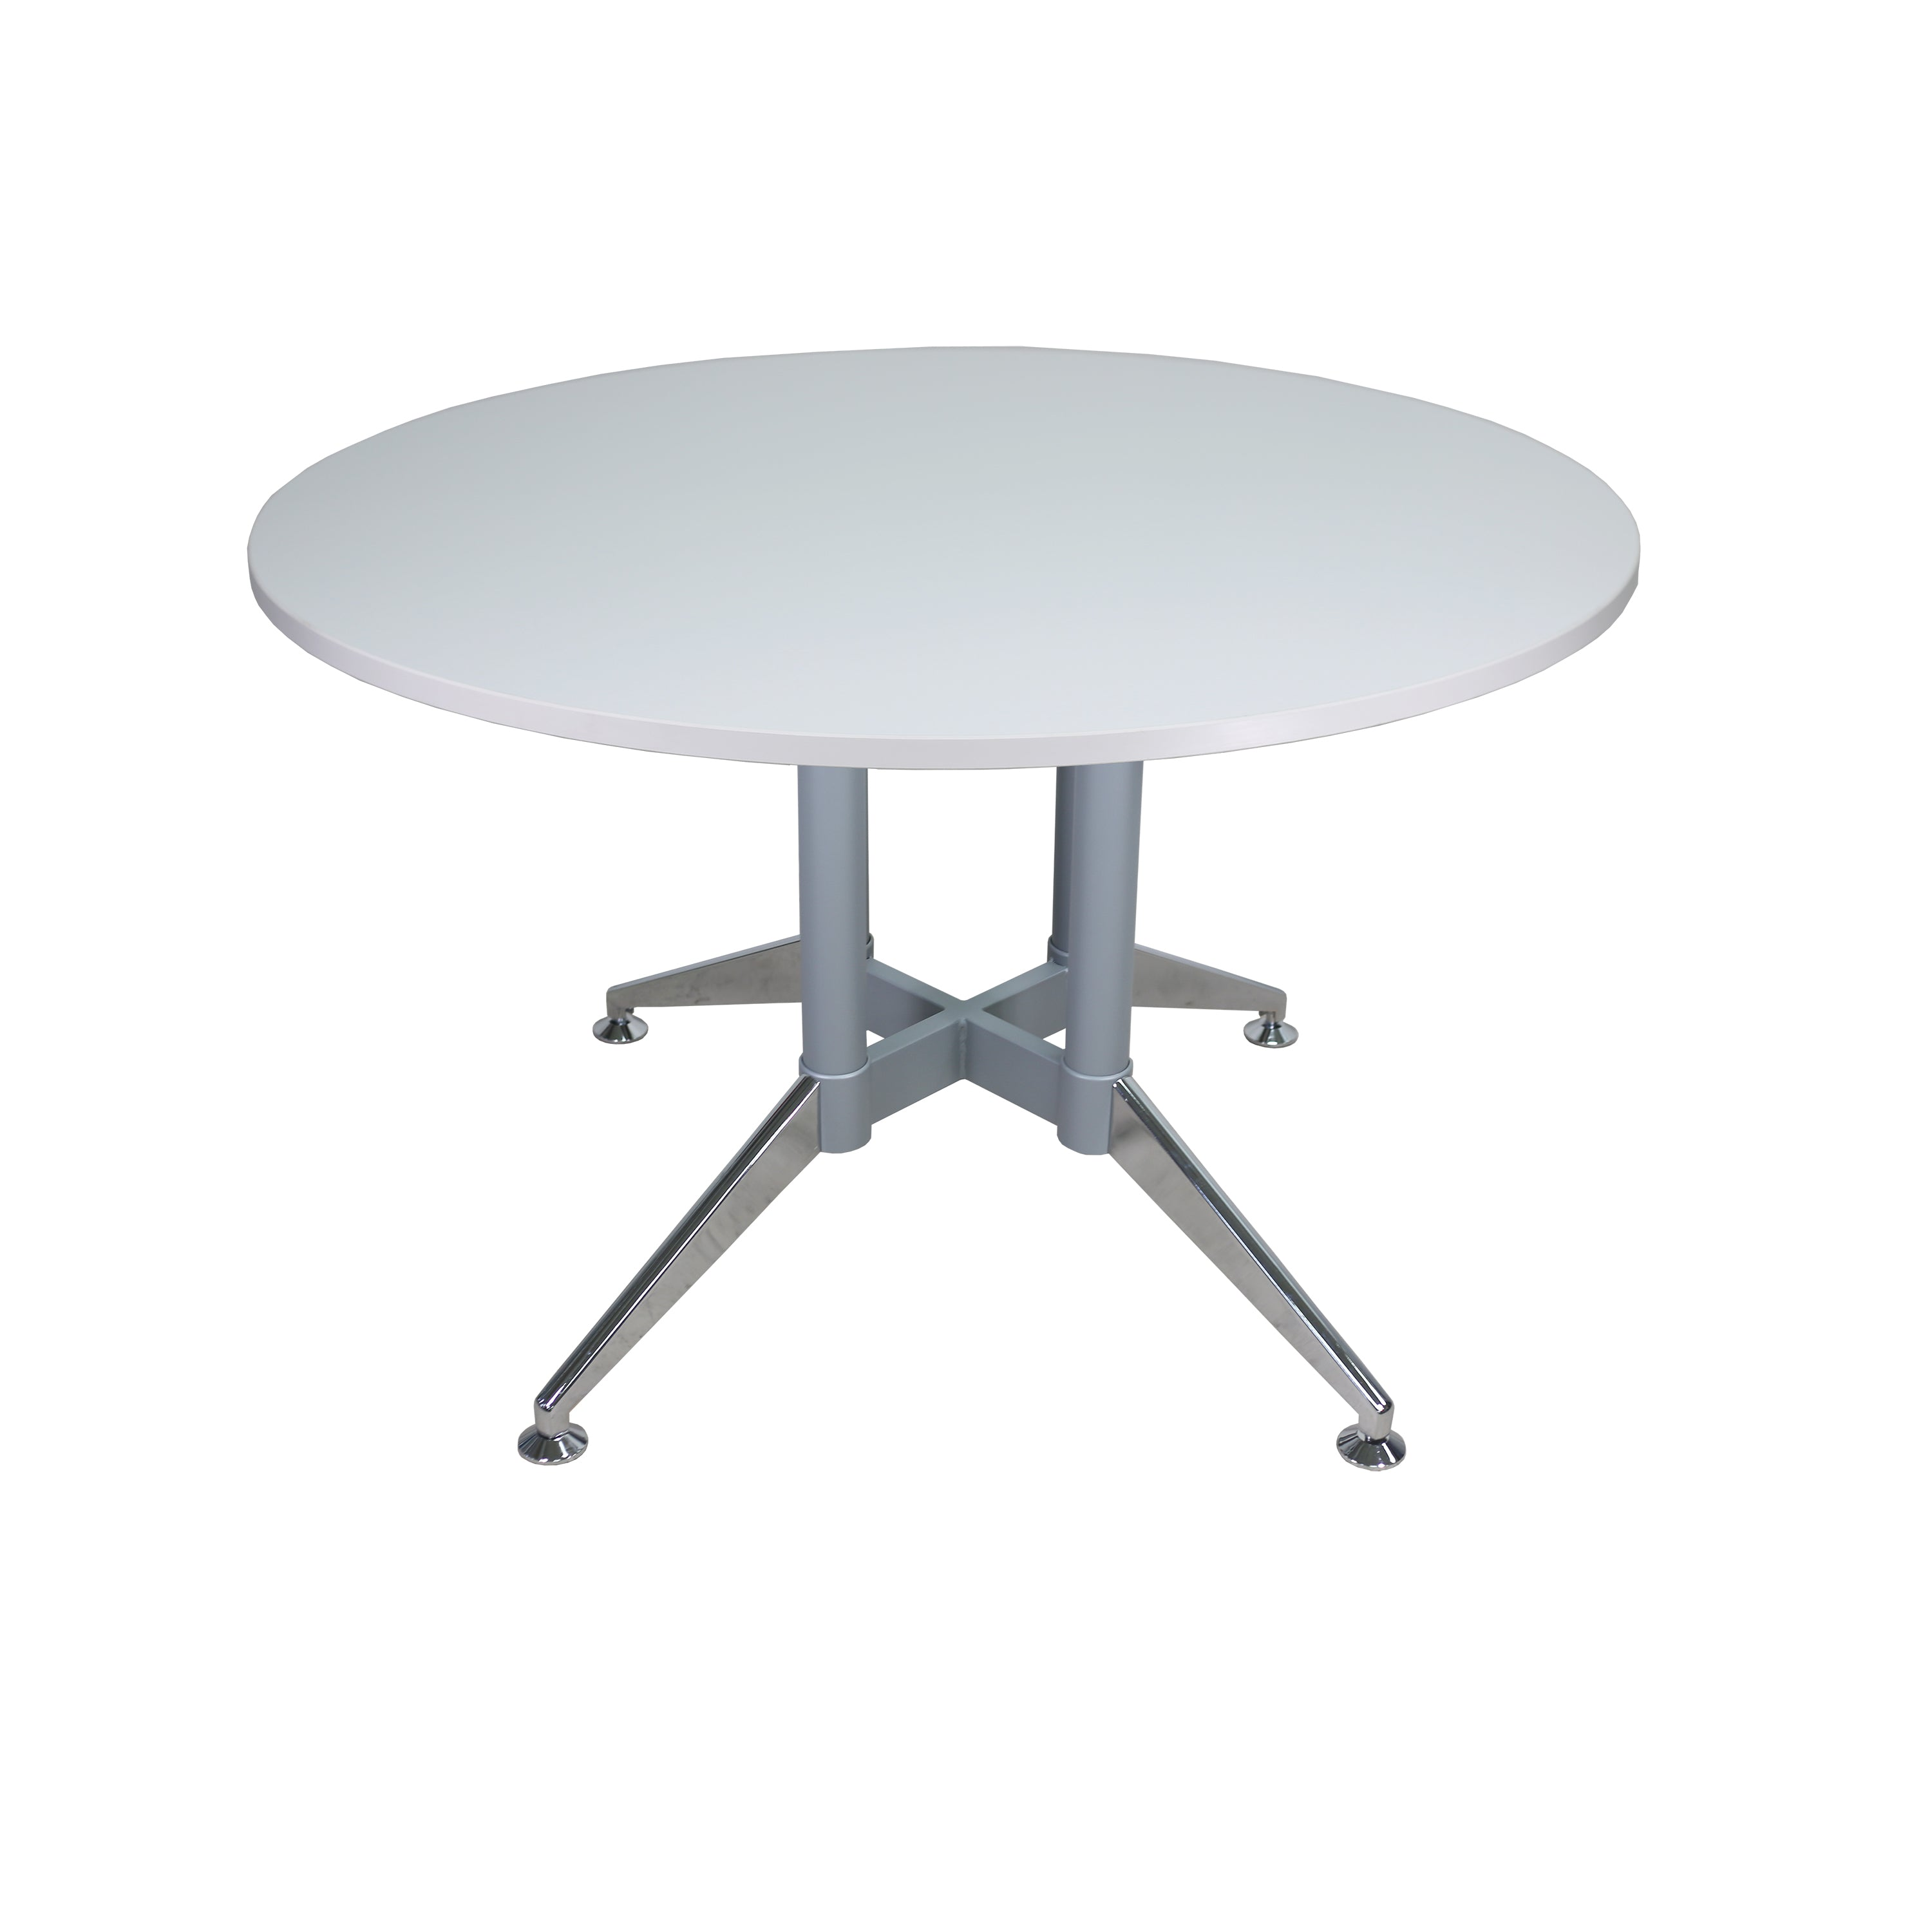 QUANTUM STEEL BASE ROUND CONFERENCE TABLE OFX Office - Round pedestal conference table